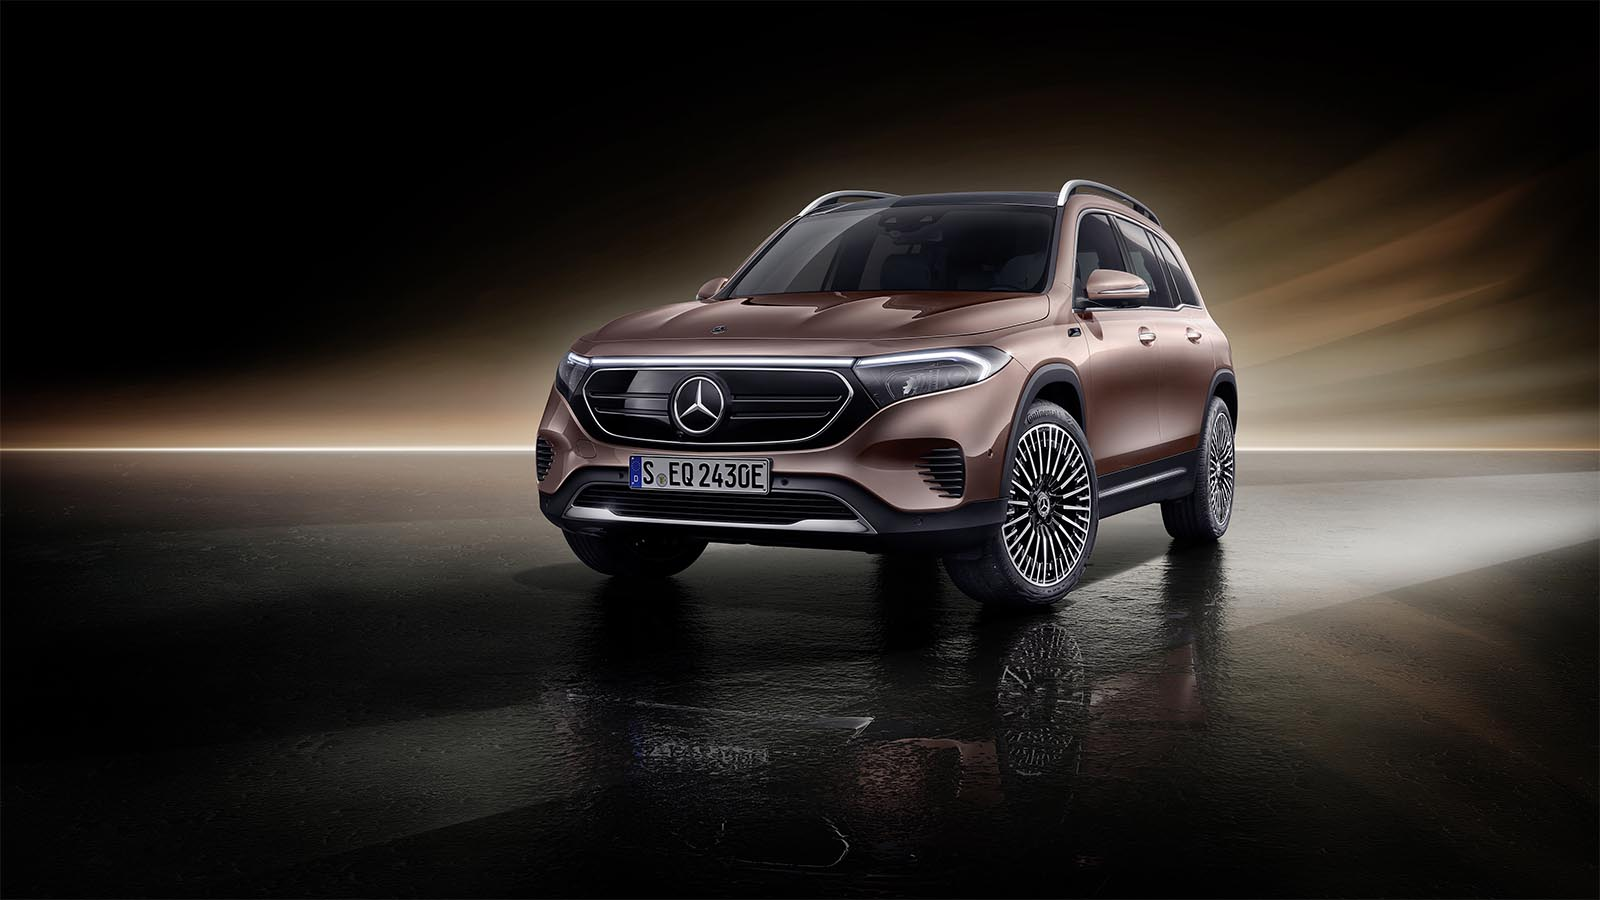 With EQB, Mercedes Launches Third All-Electric Model This Year - The Detroit Bureau